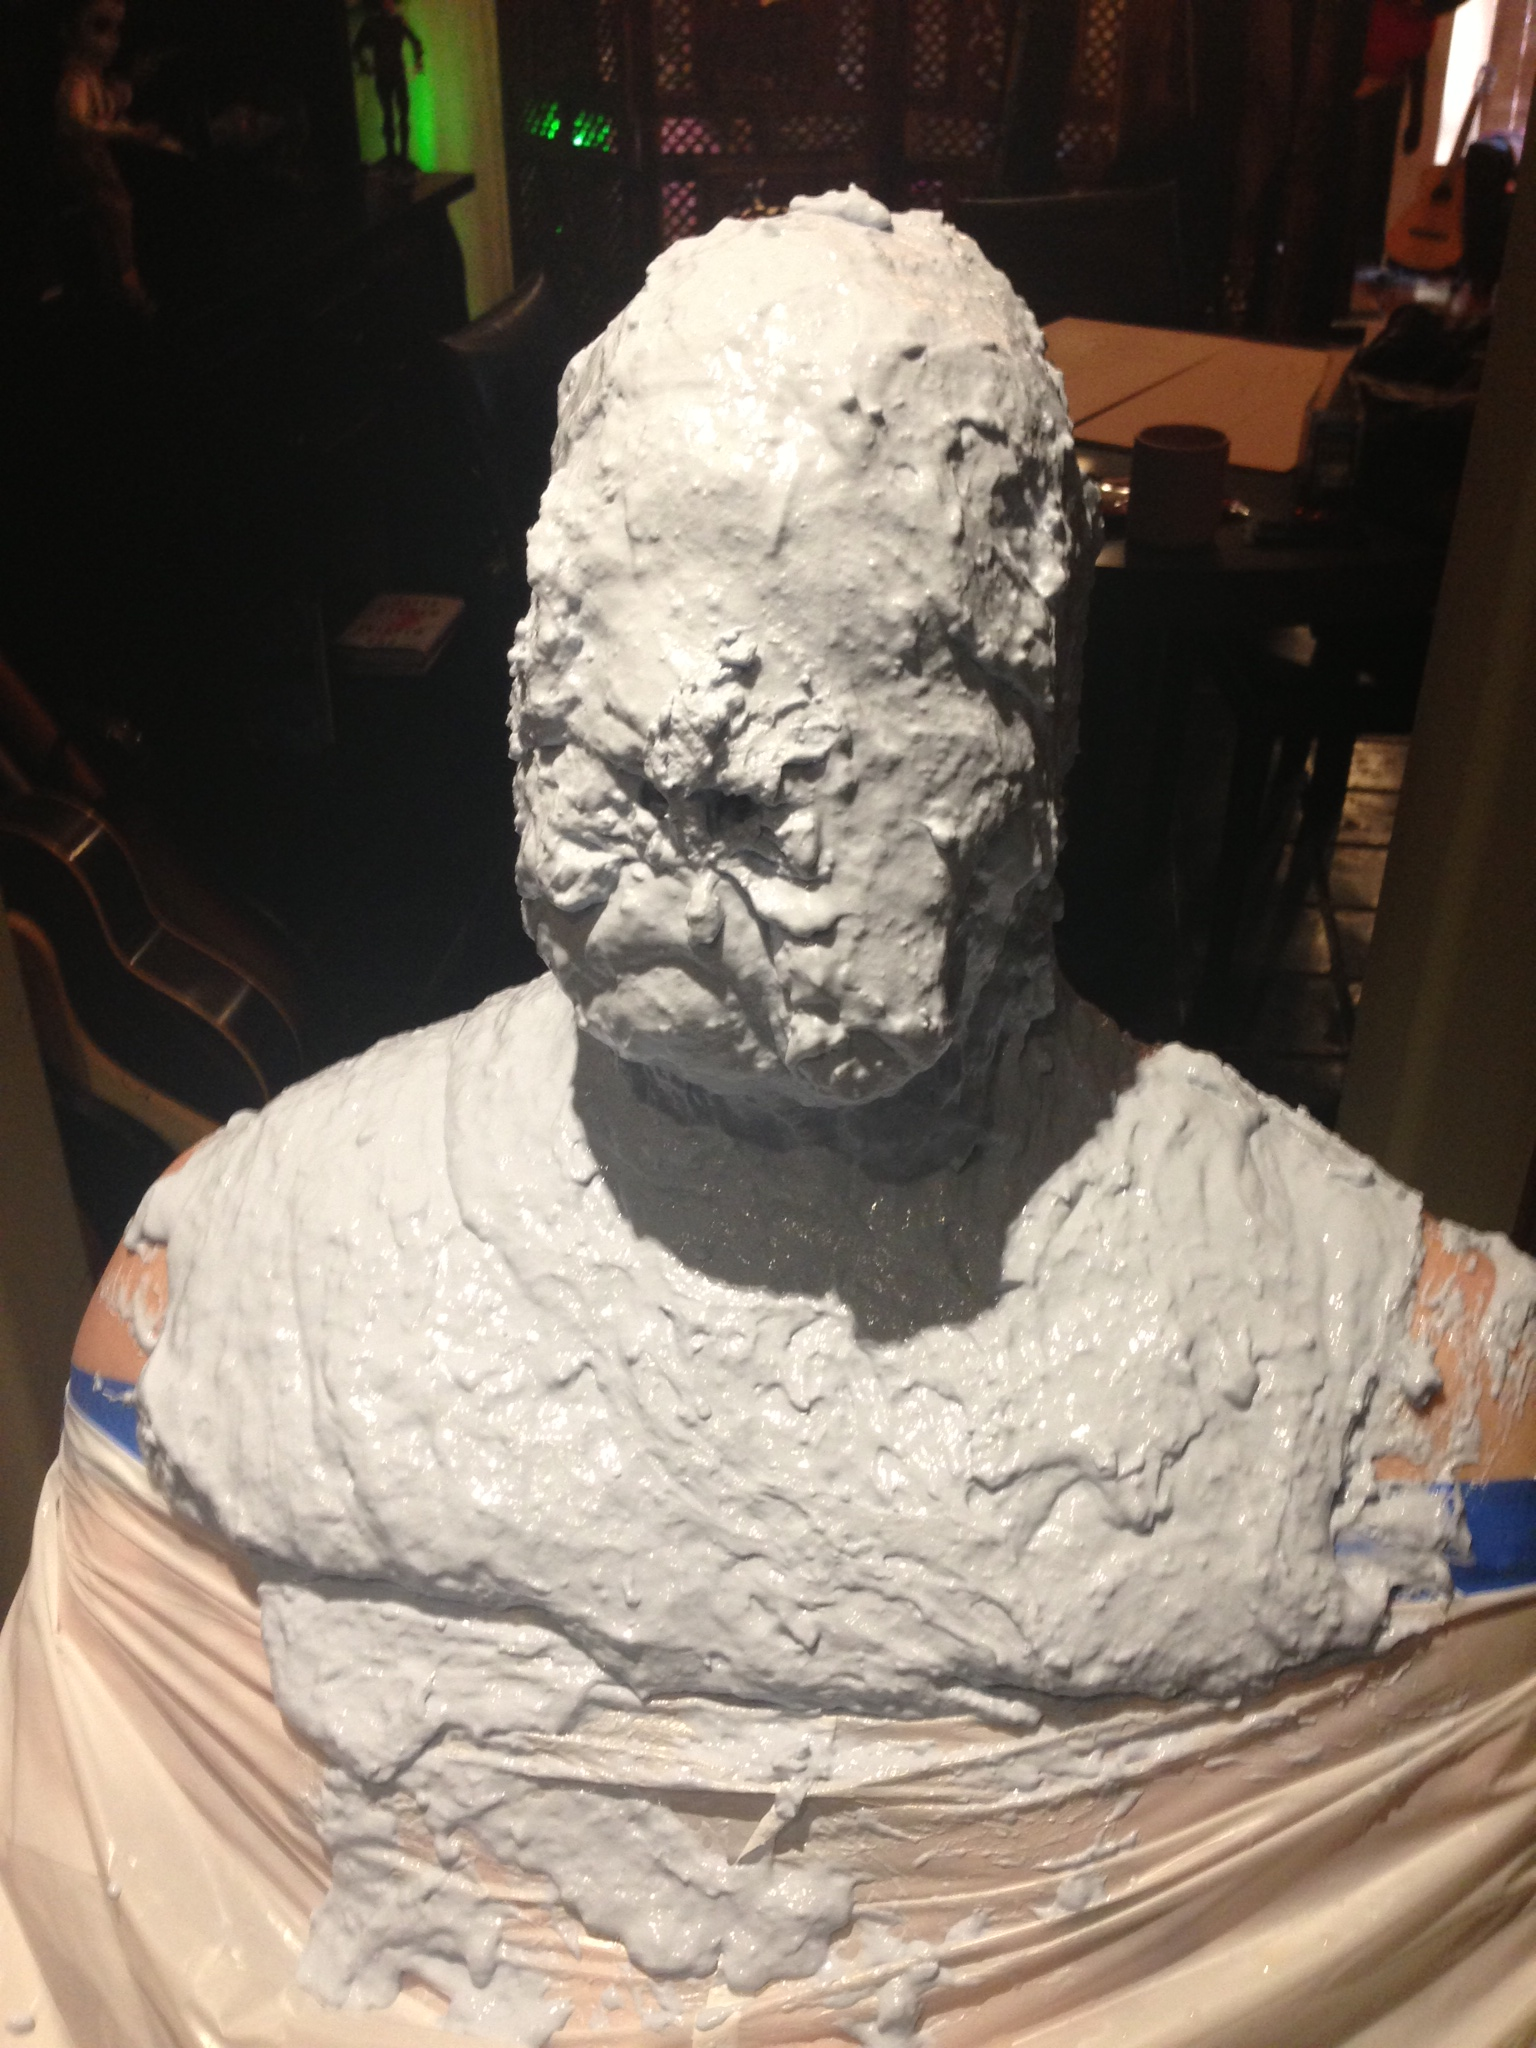 Richard Dorton getting his head mold